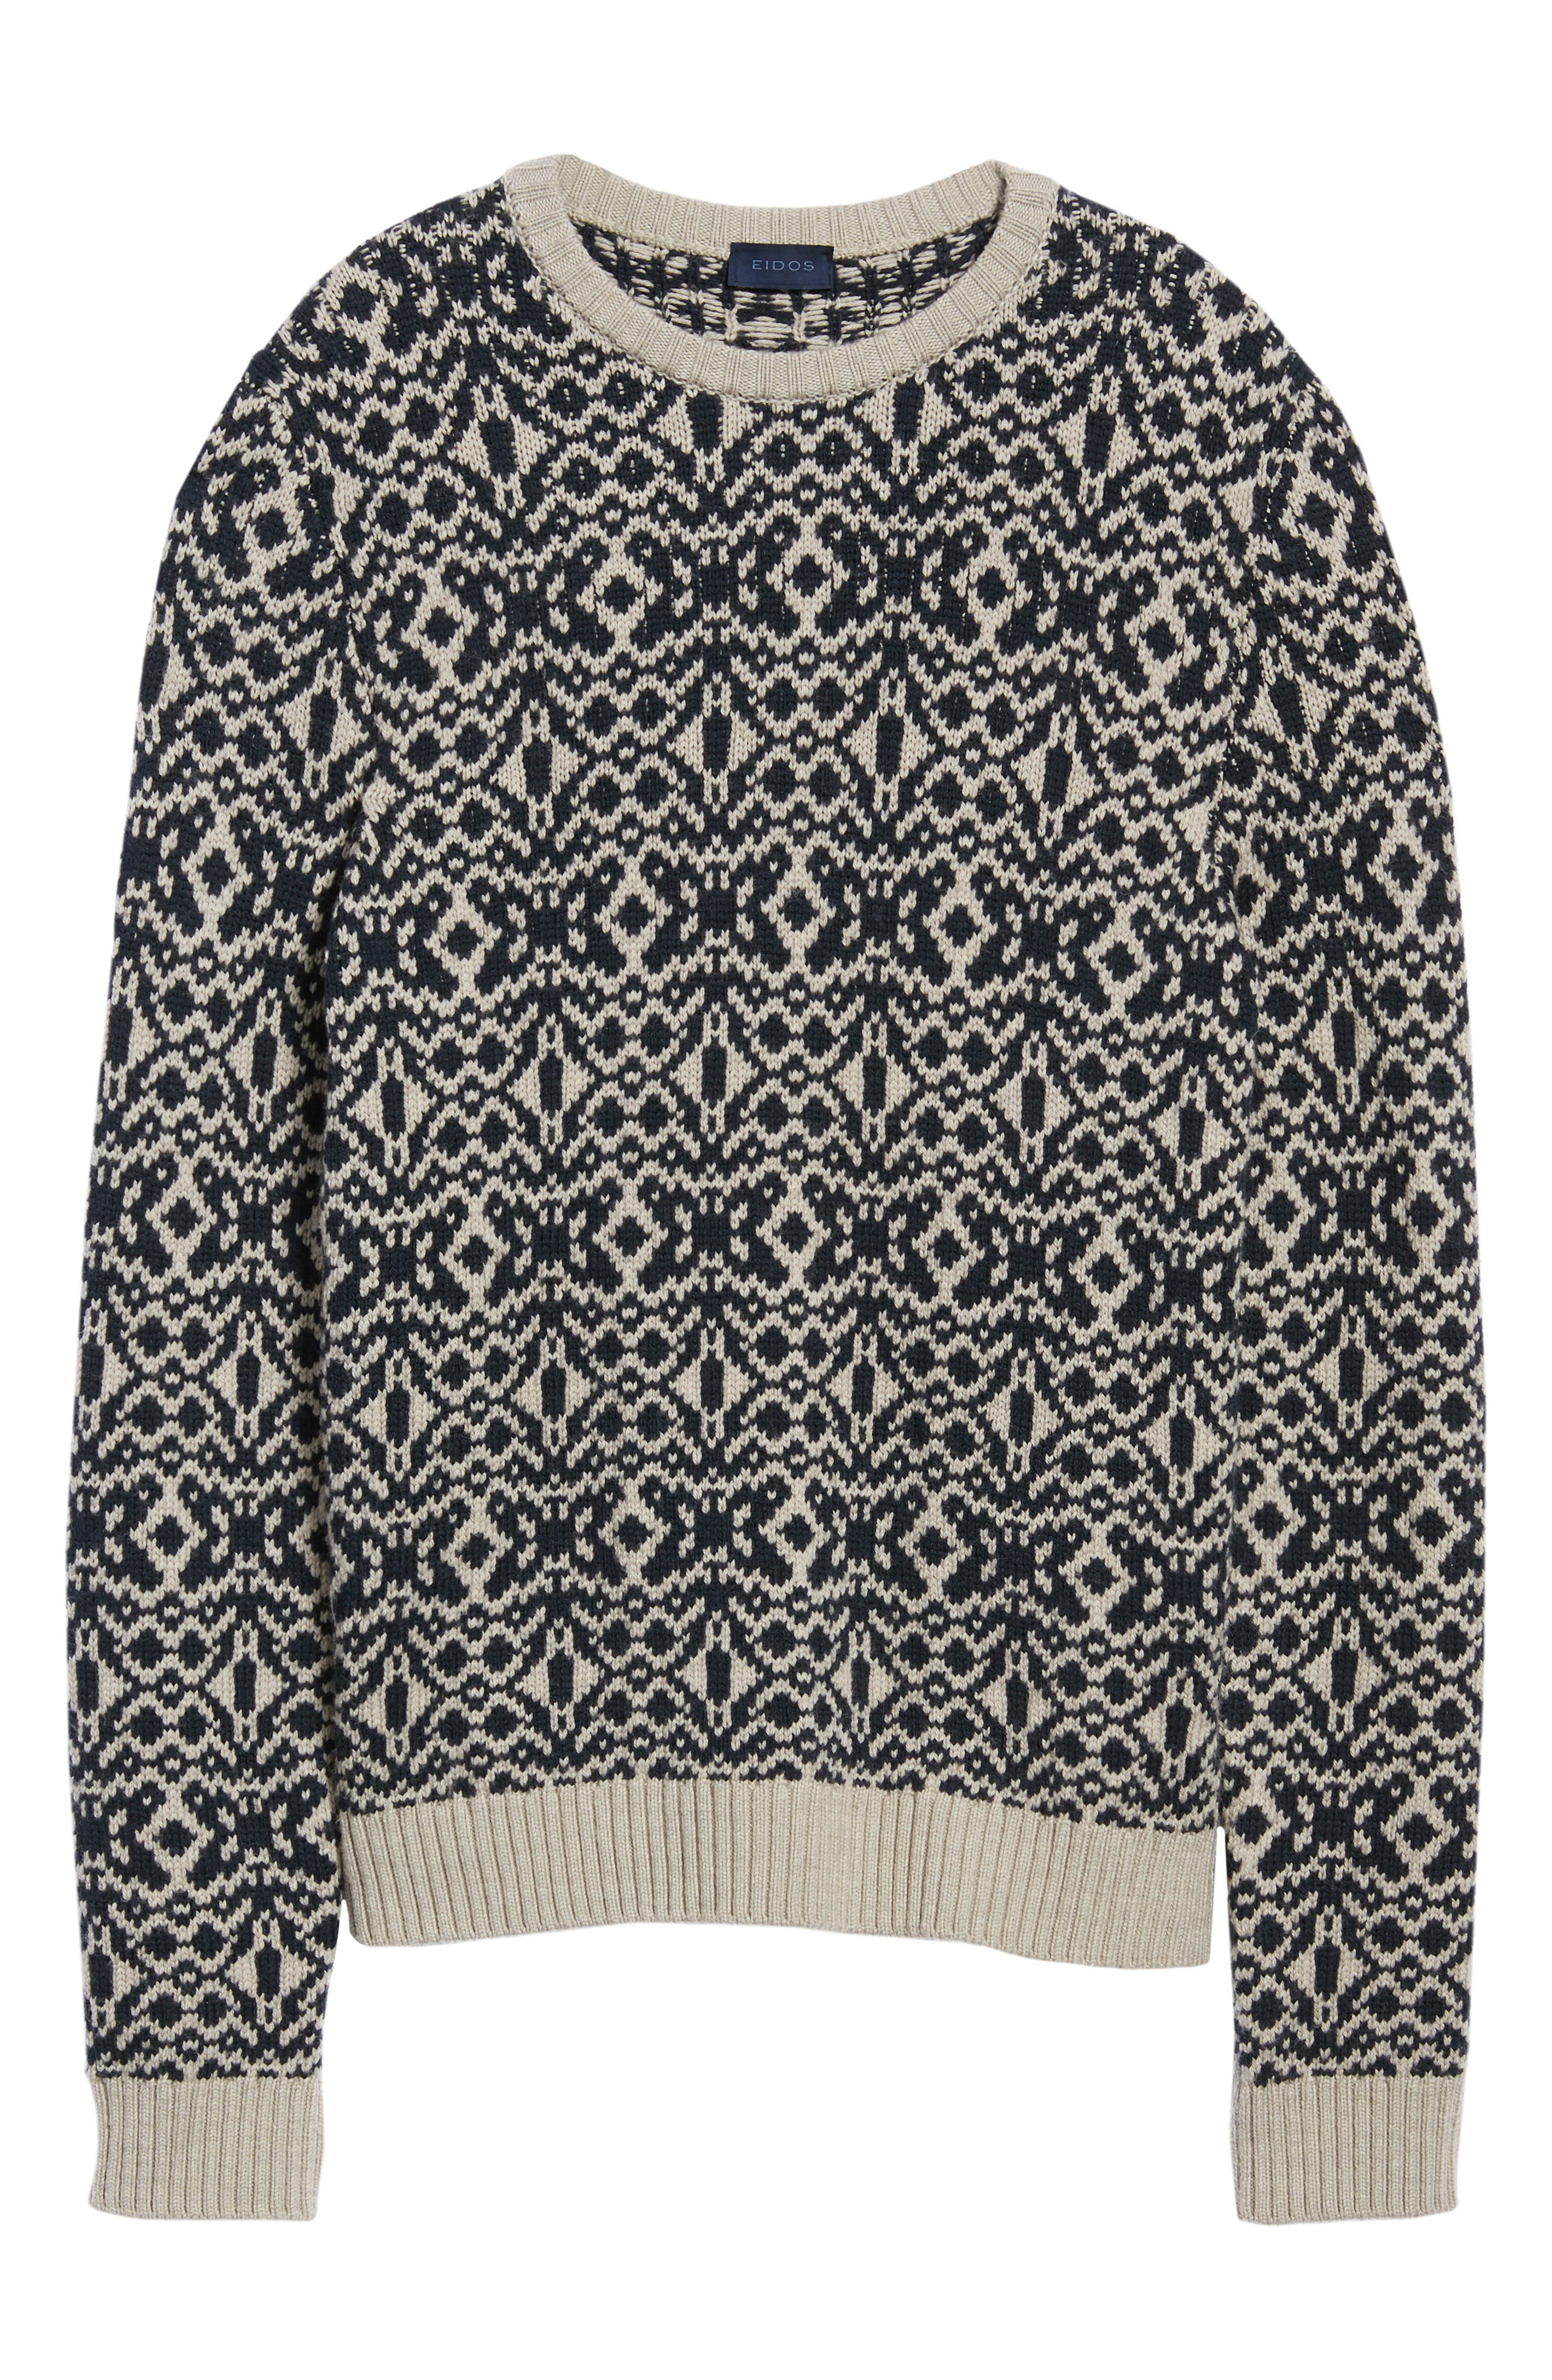 Patterned Wool Crewneck Sweater,                             Alternate thumbnail 6, color,                             STONE